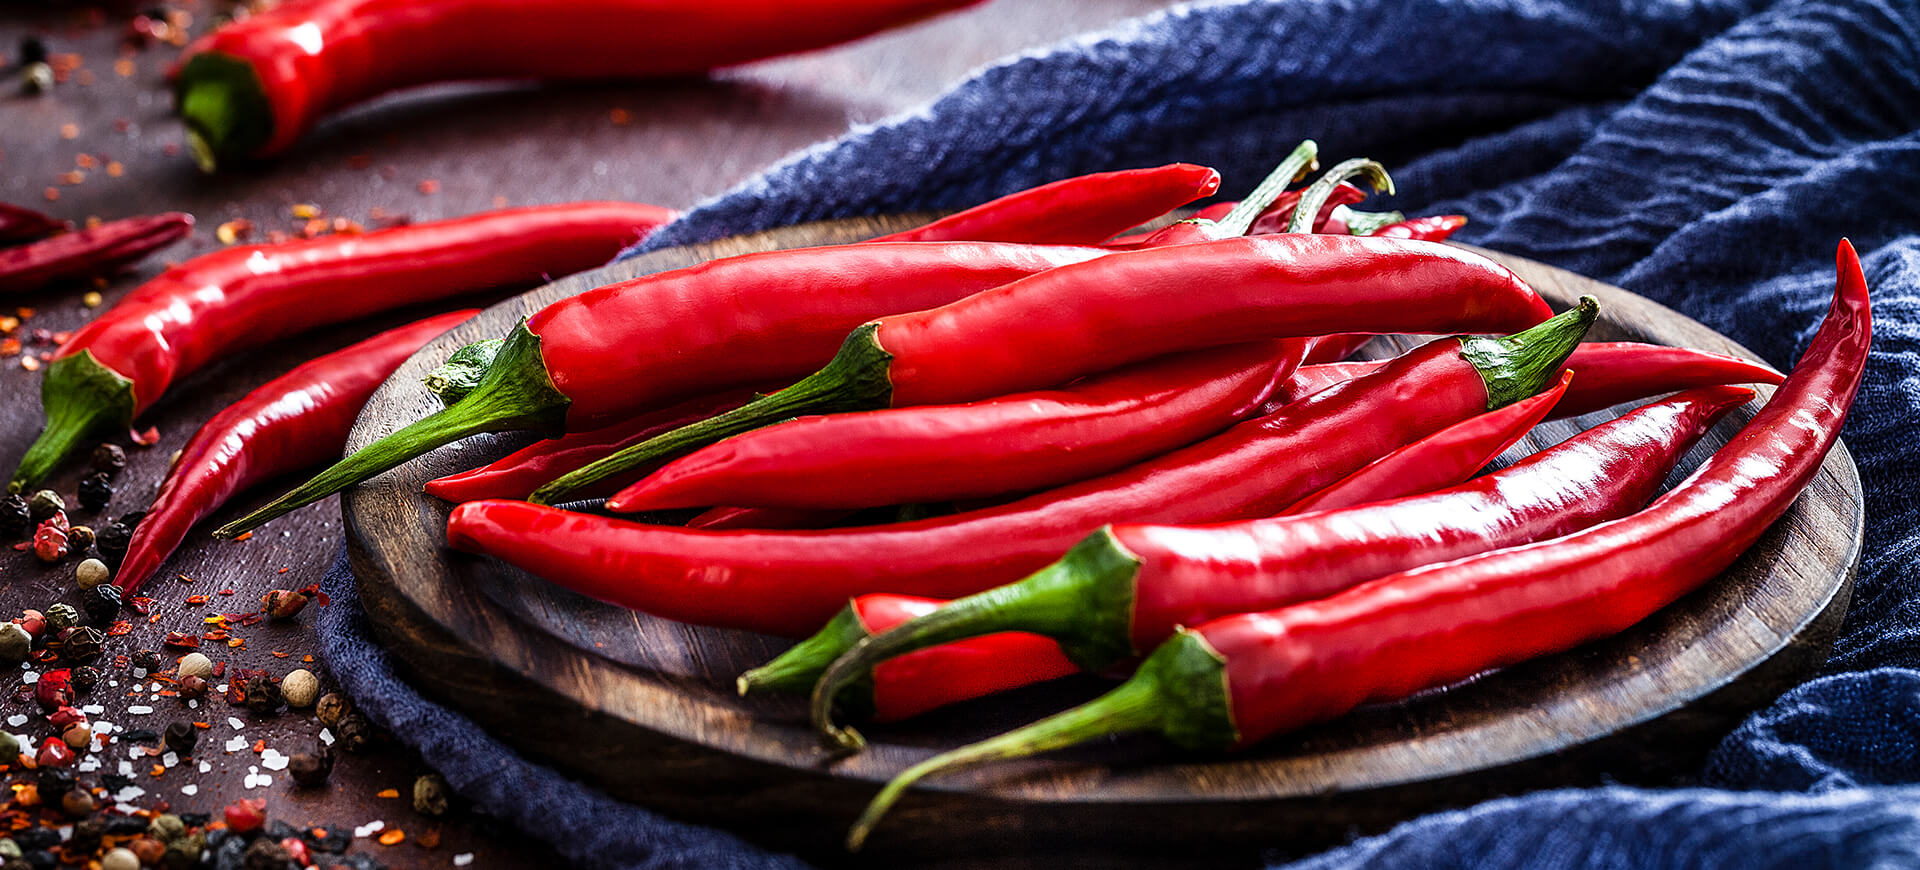 Why We Love Spicy Food